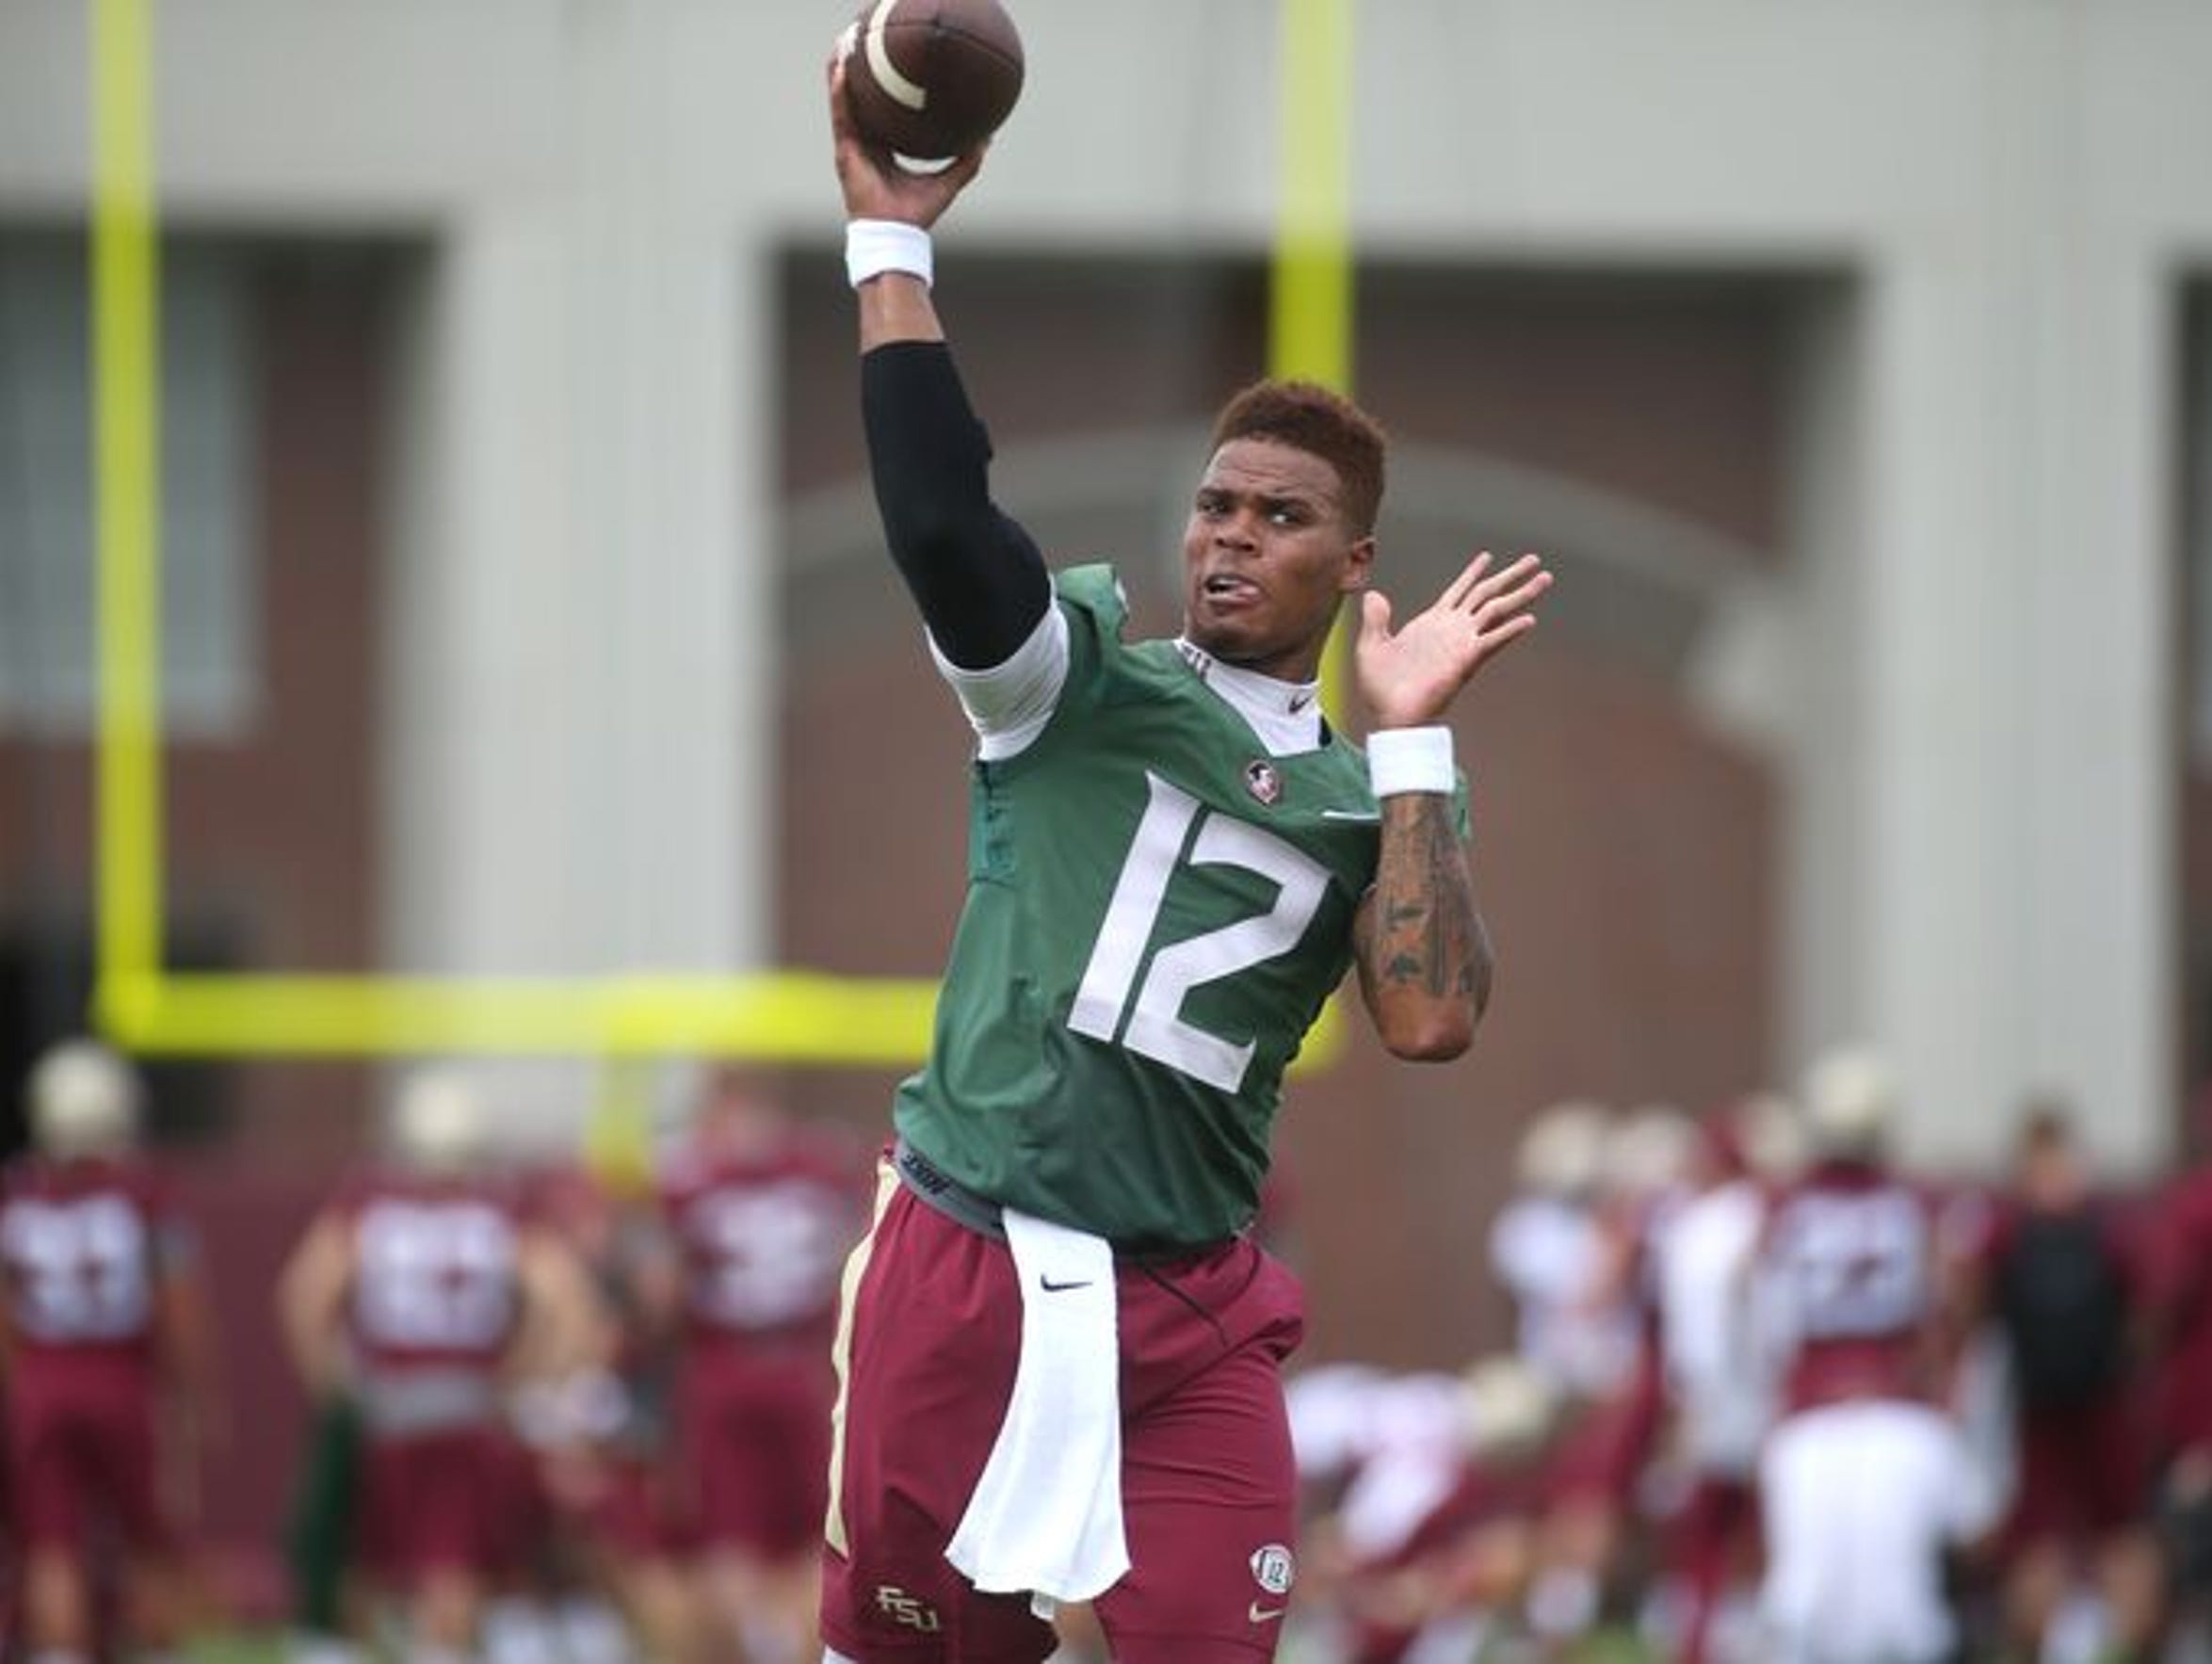 Francois's ability to be a dual-threat QB is an exciting